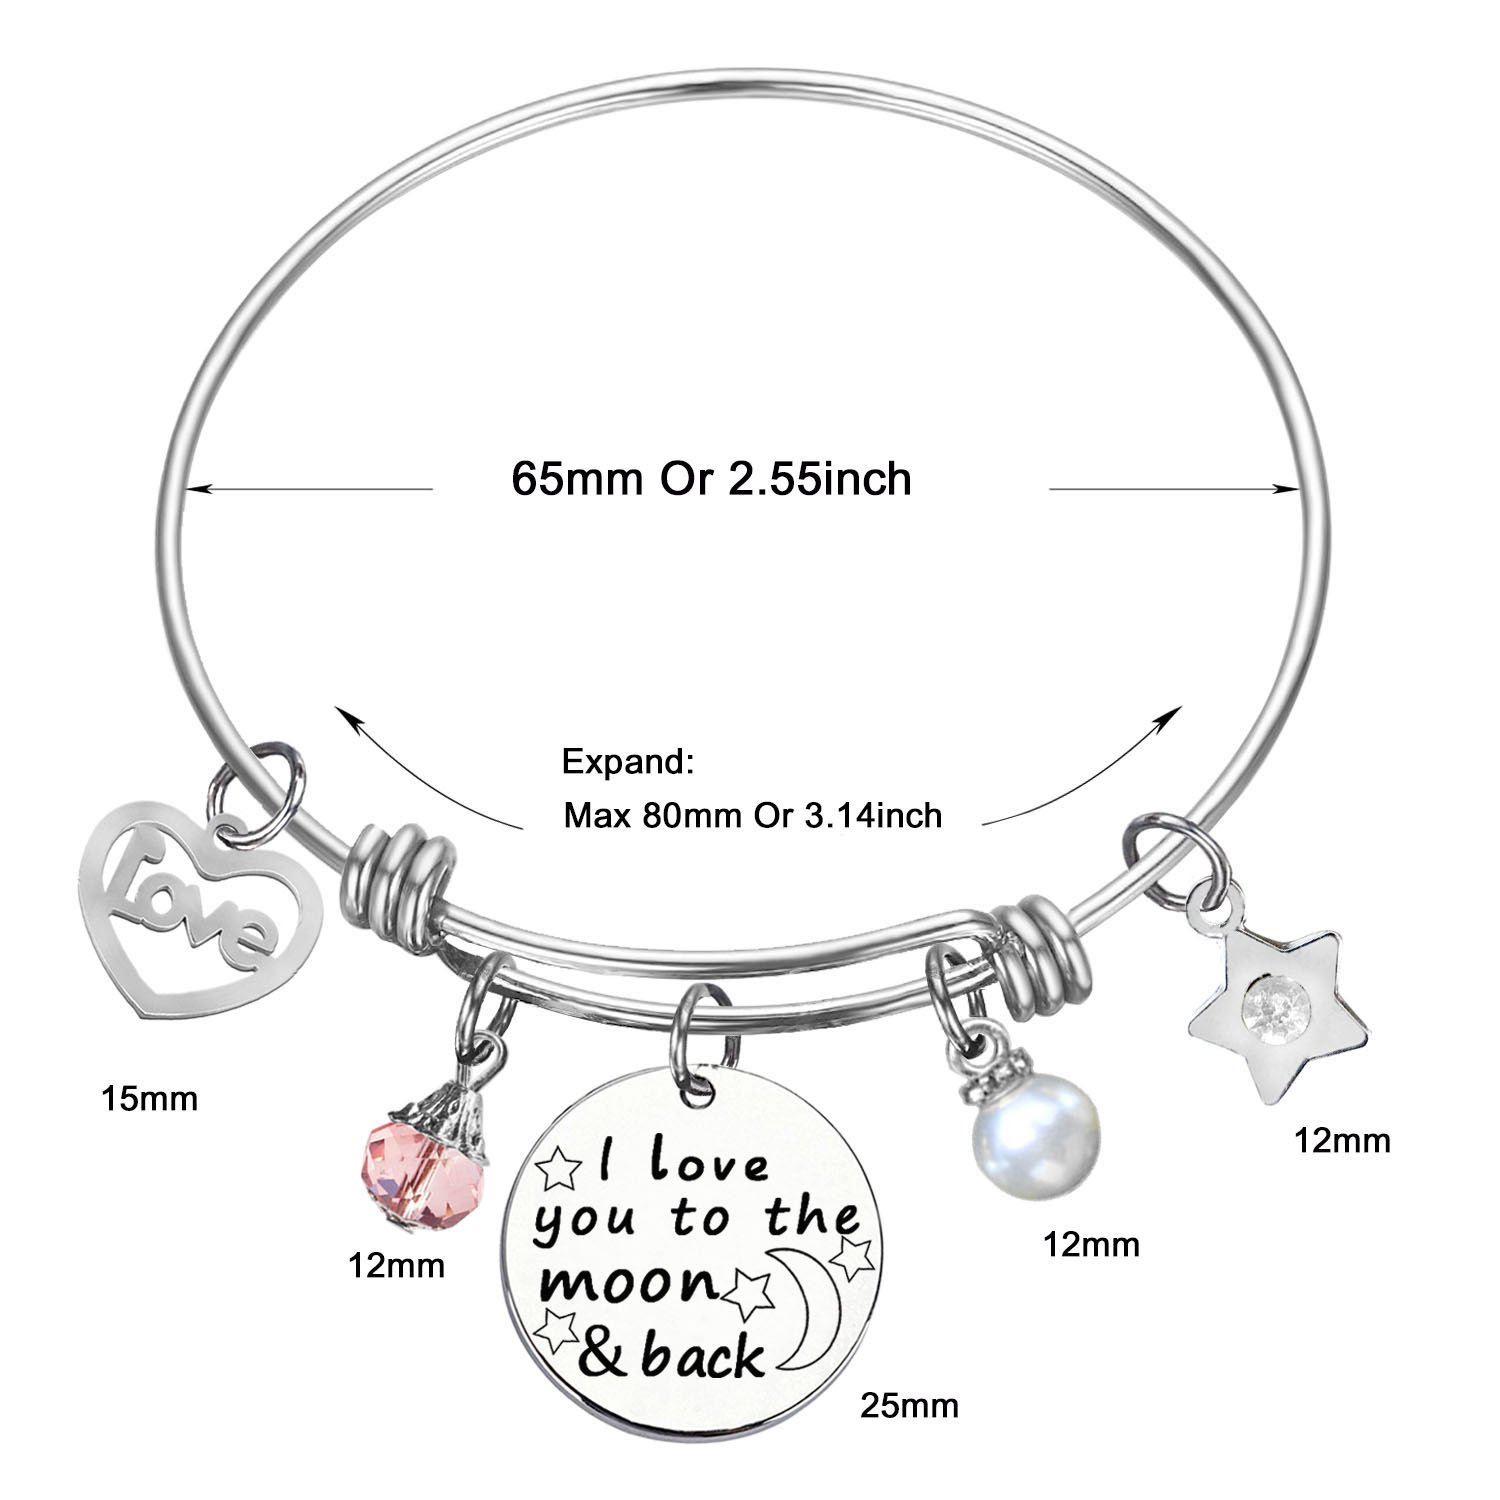 I Love You to the Moon and Back Bangle for SOOFUN Inspirational Jewelry Bracelet